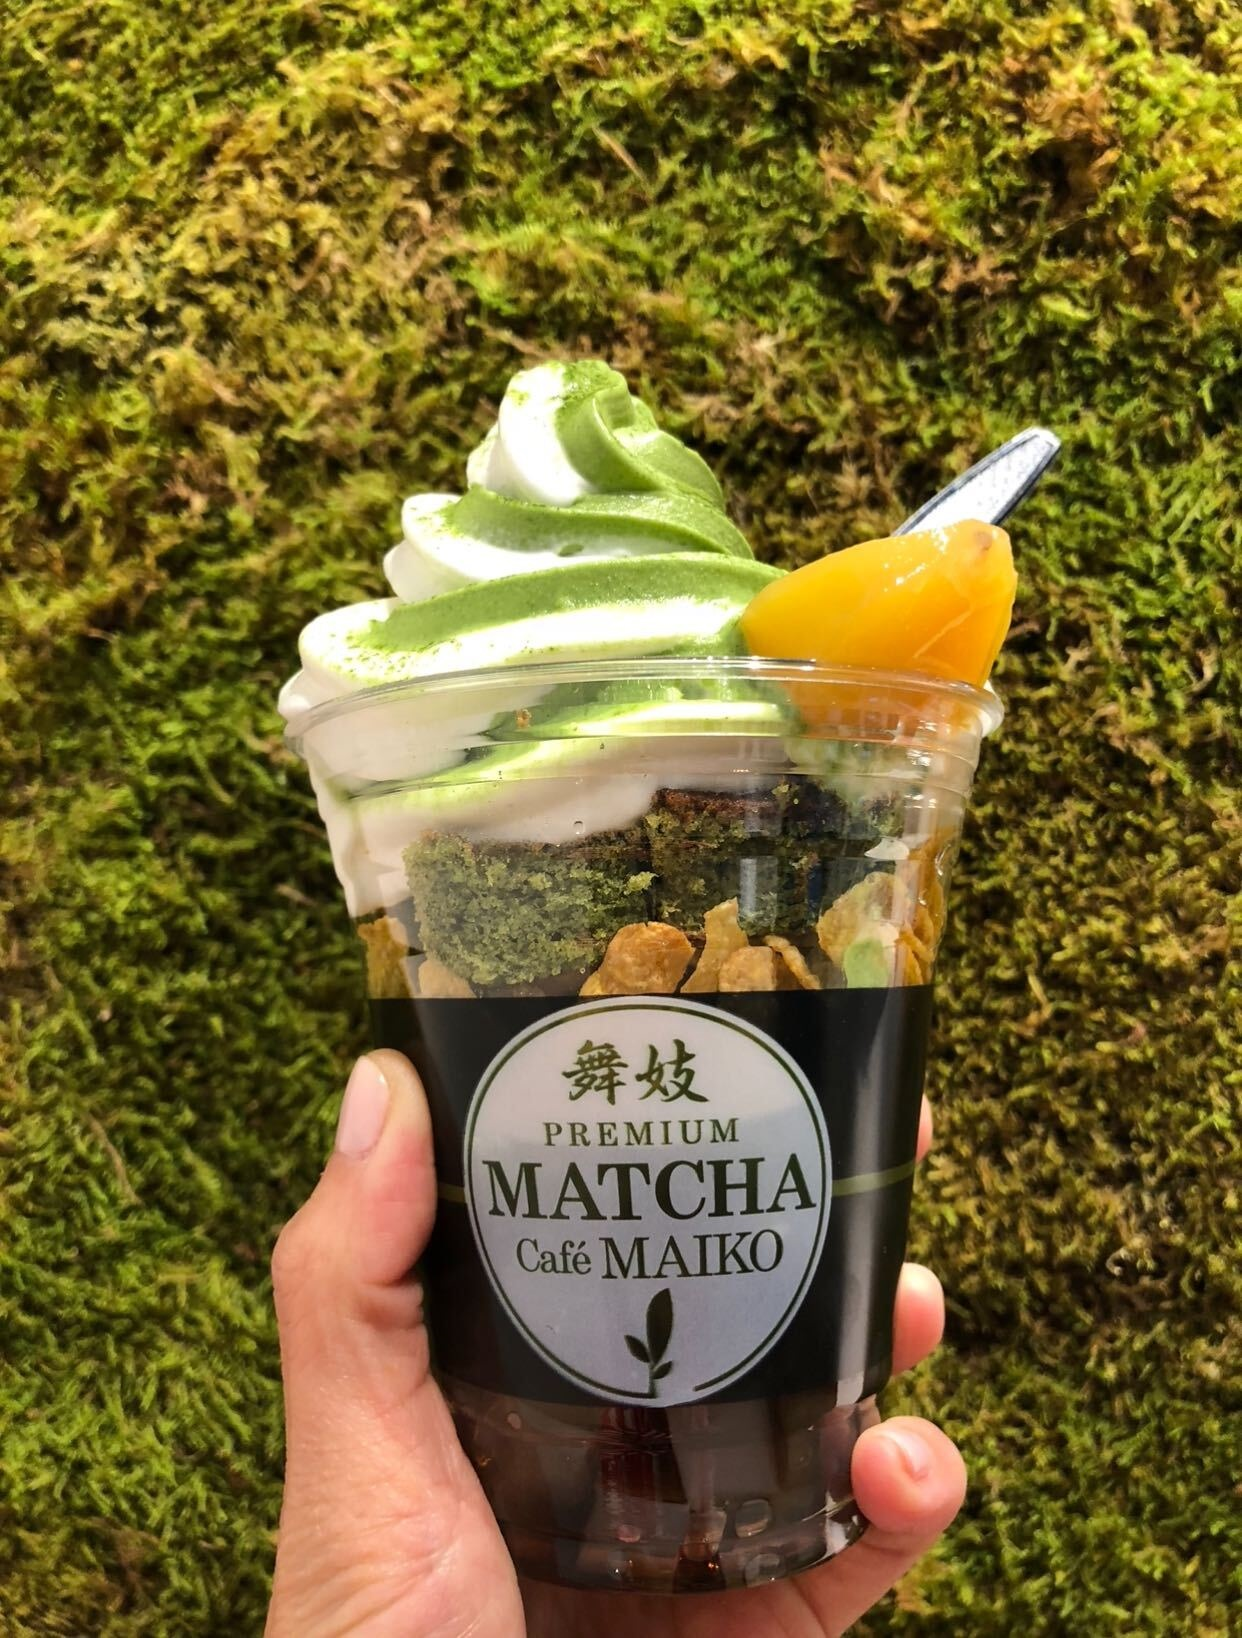 The loaded maiko special at Matcha Cafe Maiko in San Francisco.